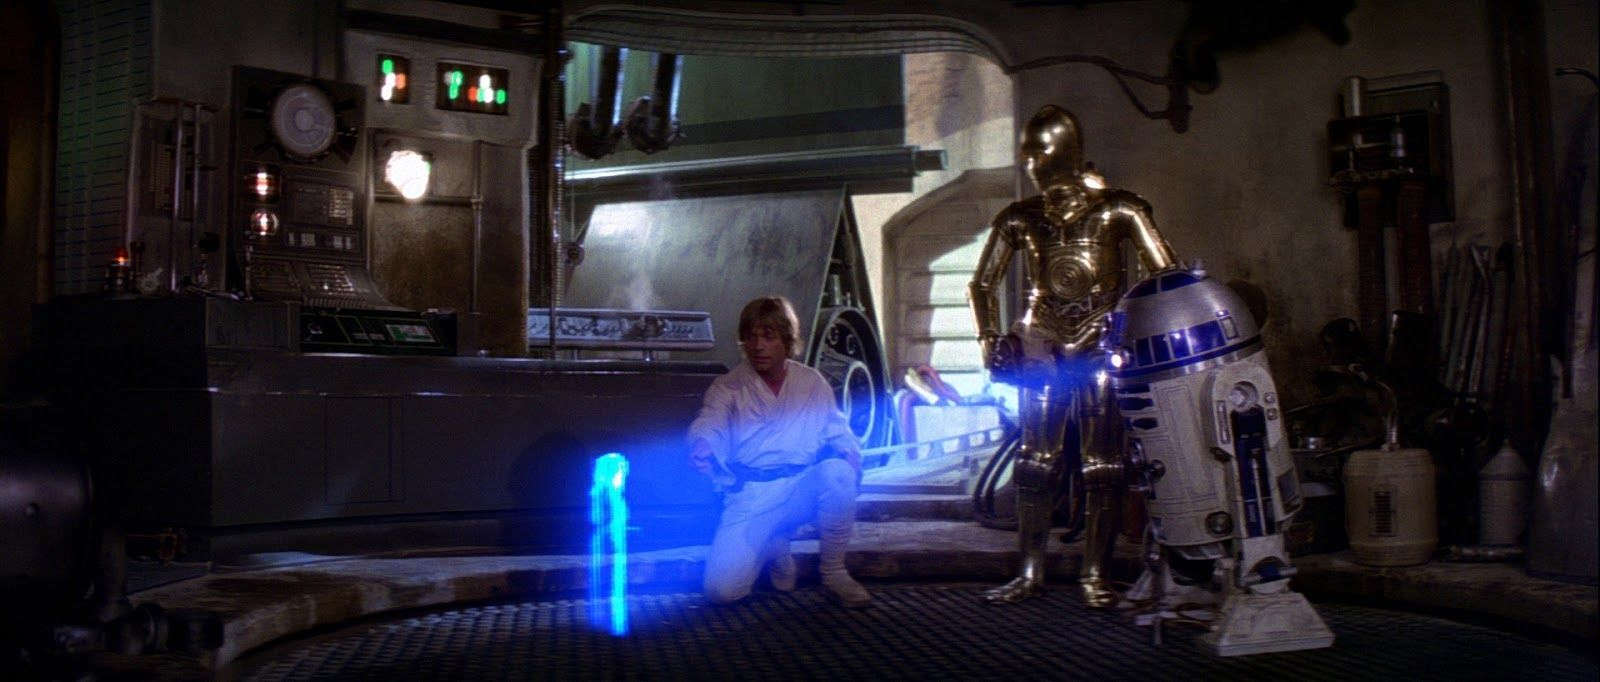 star-wars-episode-iv-star-wars-holographic-communicators-becoming-reality-jpeg-80346